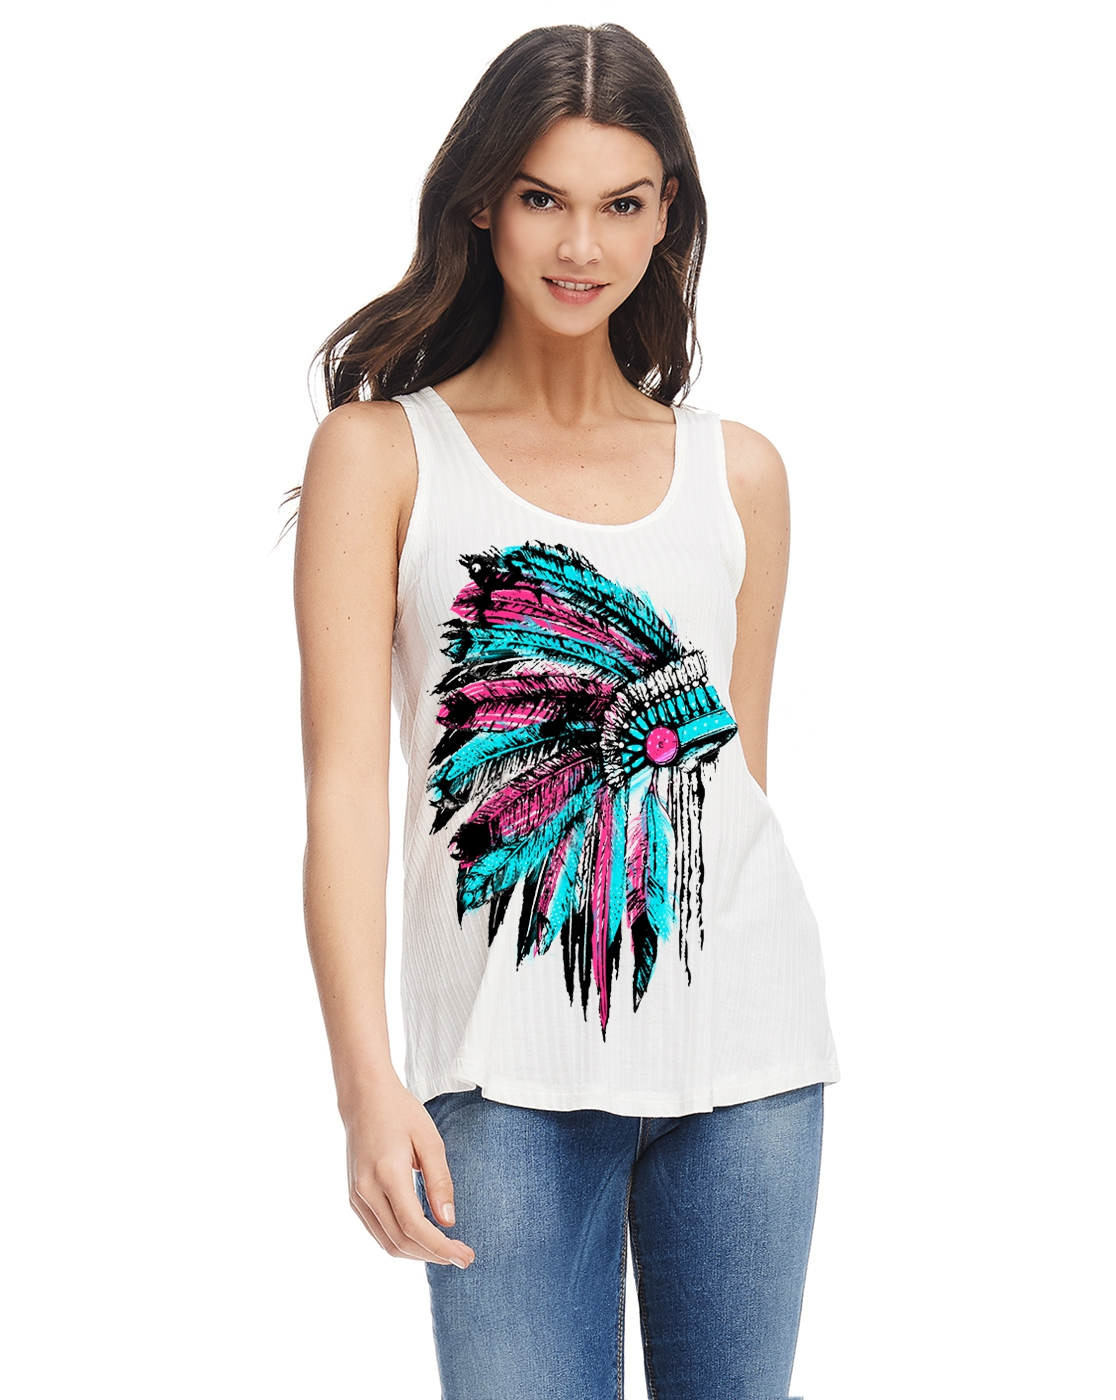 Feather urban graphic Scoop tank top - orangeshine.com